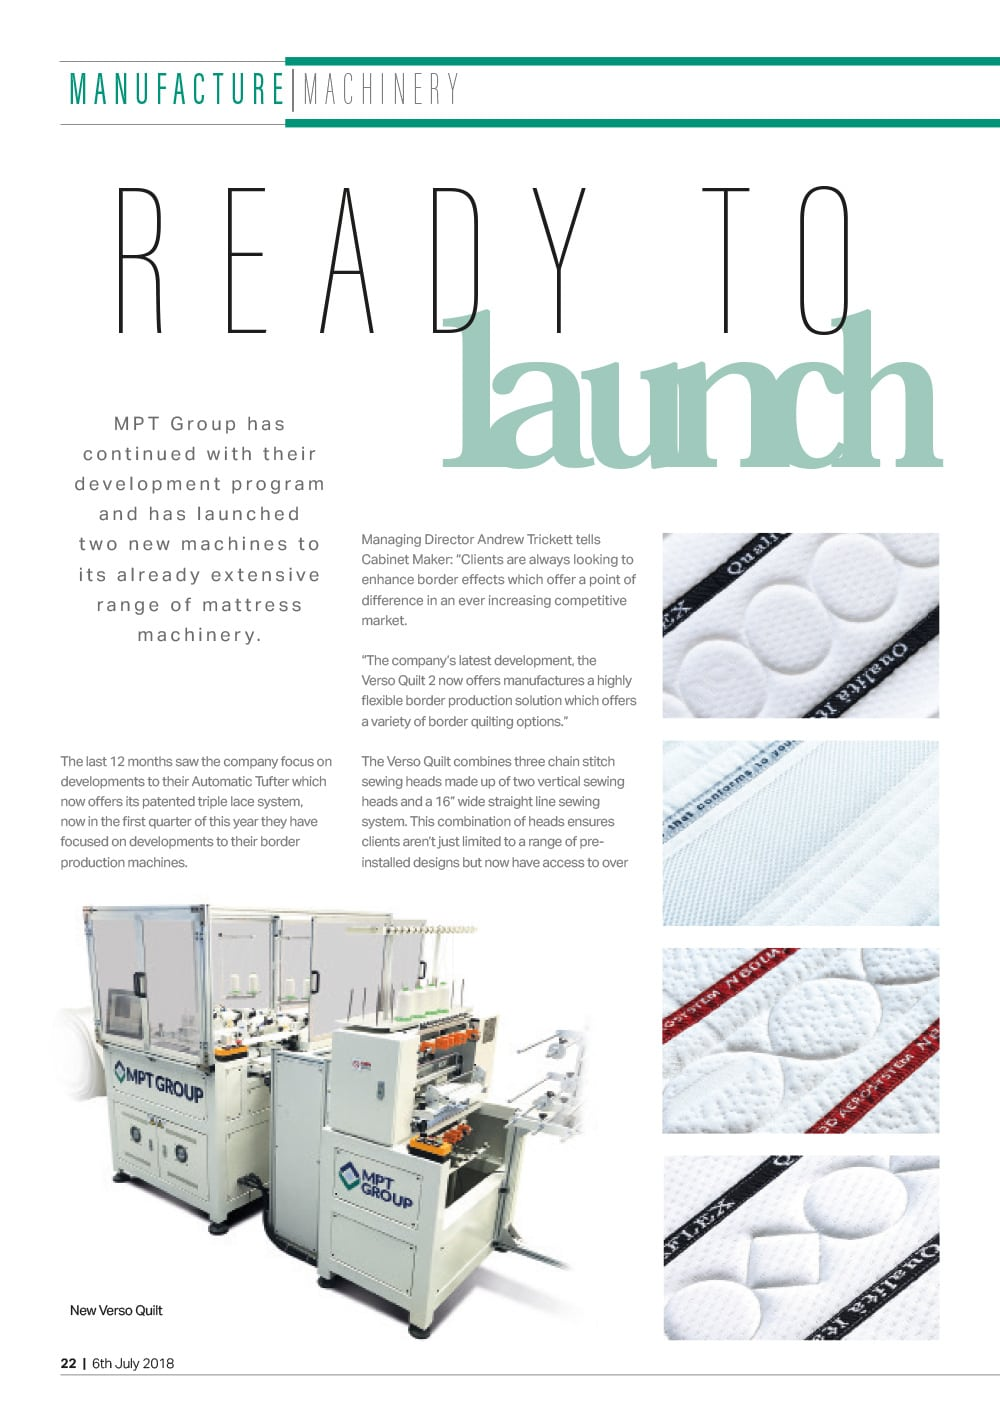 Verso Quilt – ready to launch